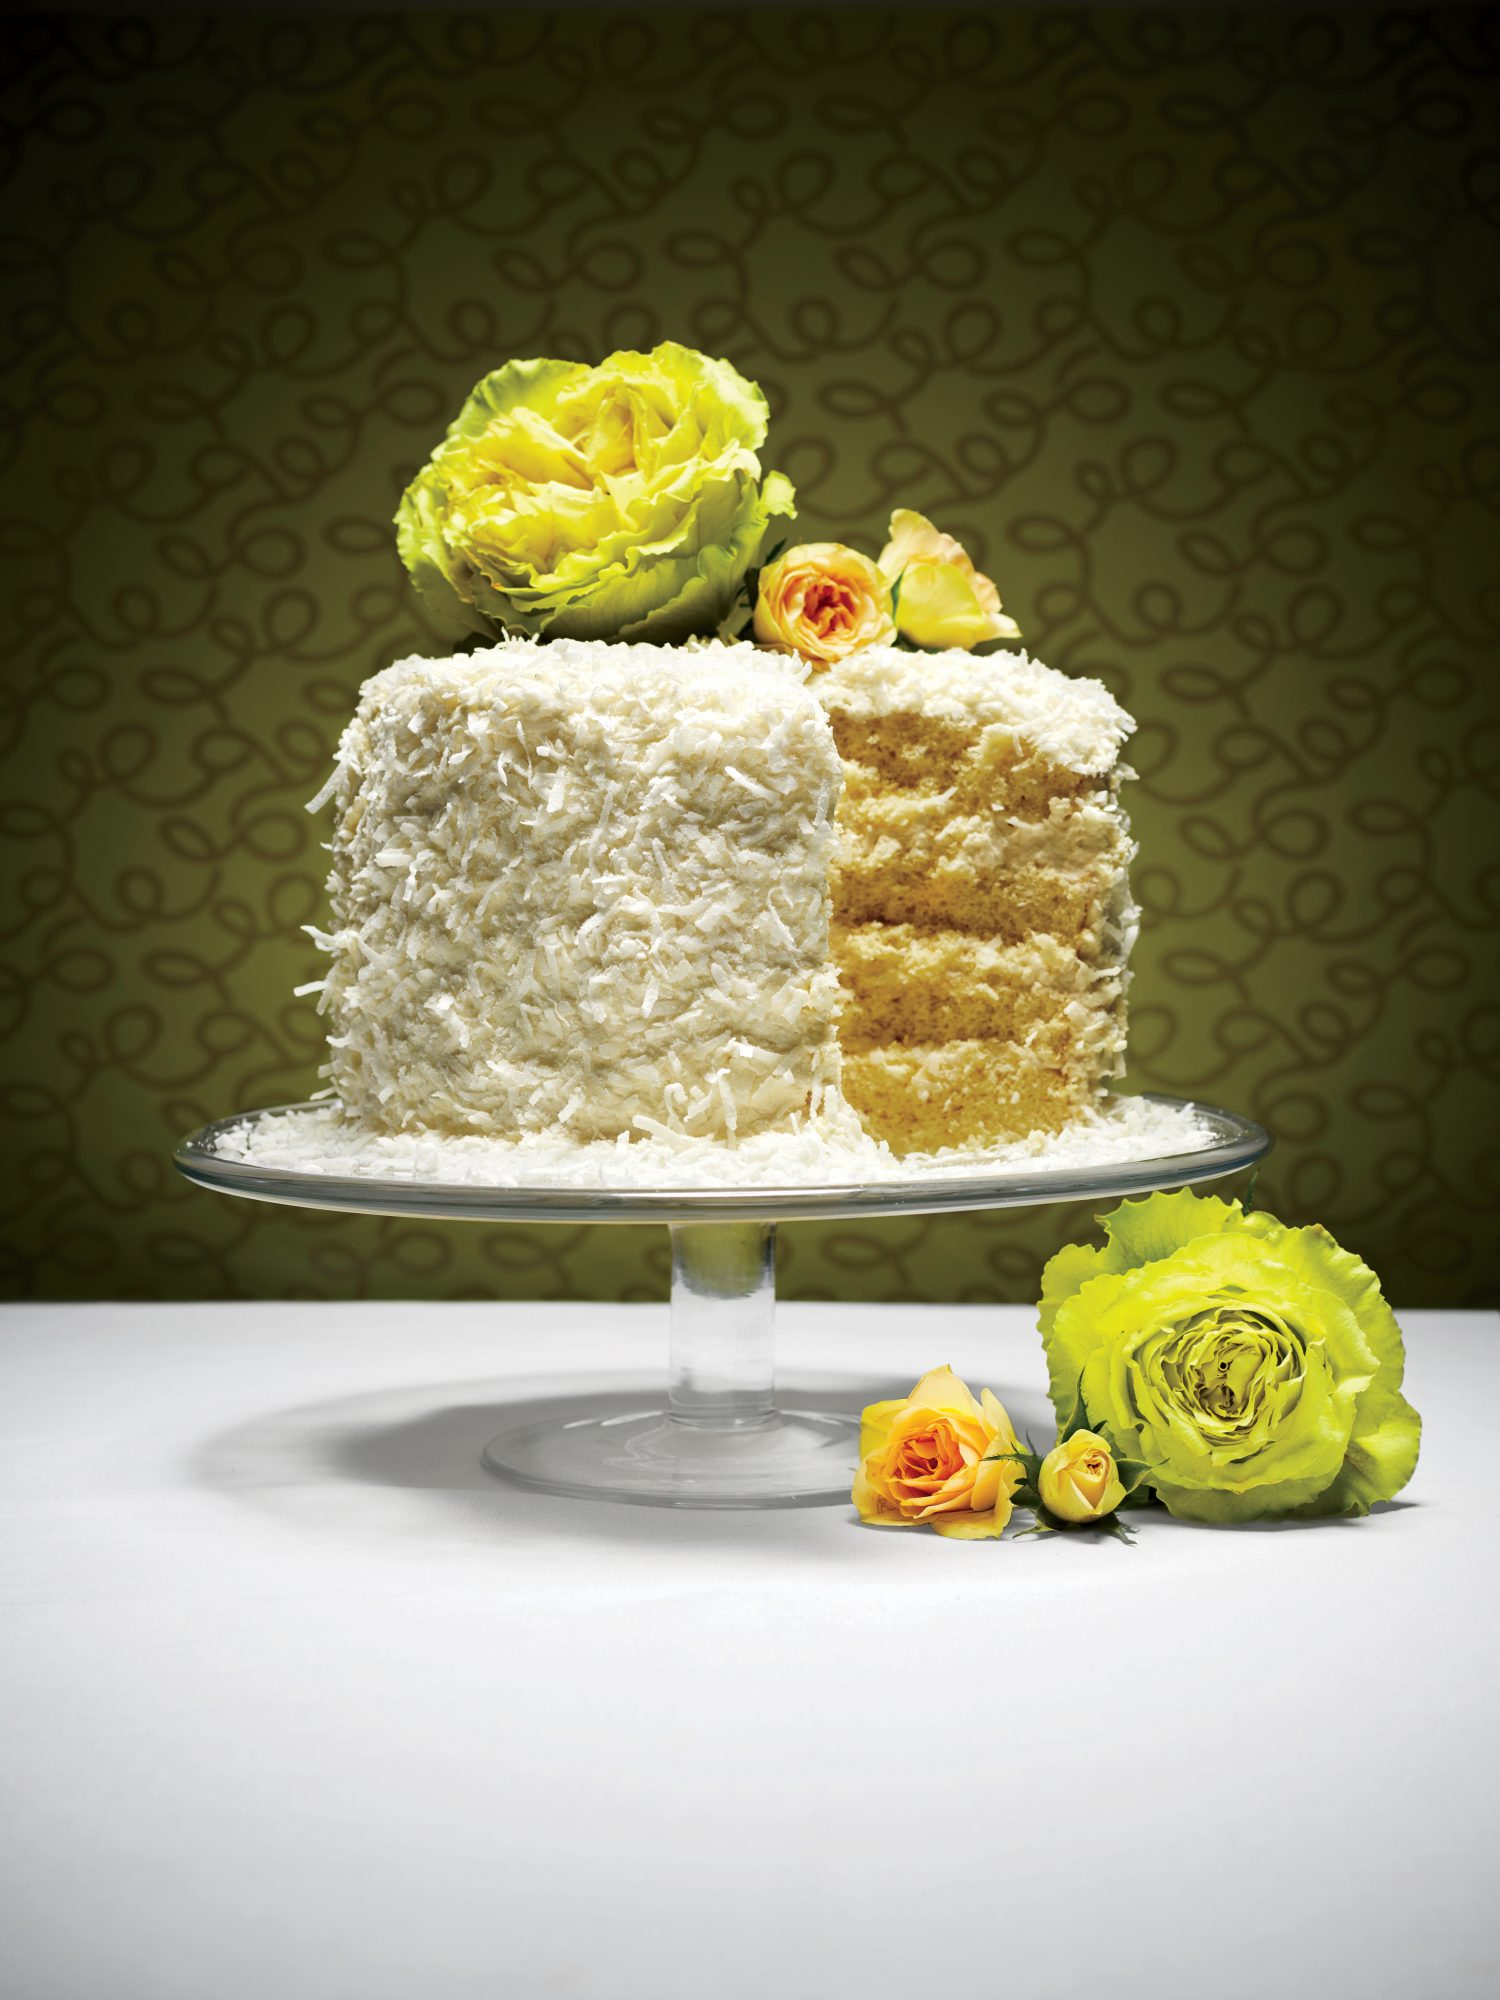 The Coconut Chiffon Cake Recipe | MyRecipes